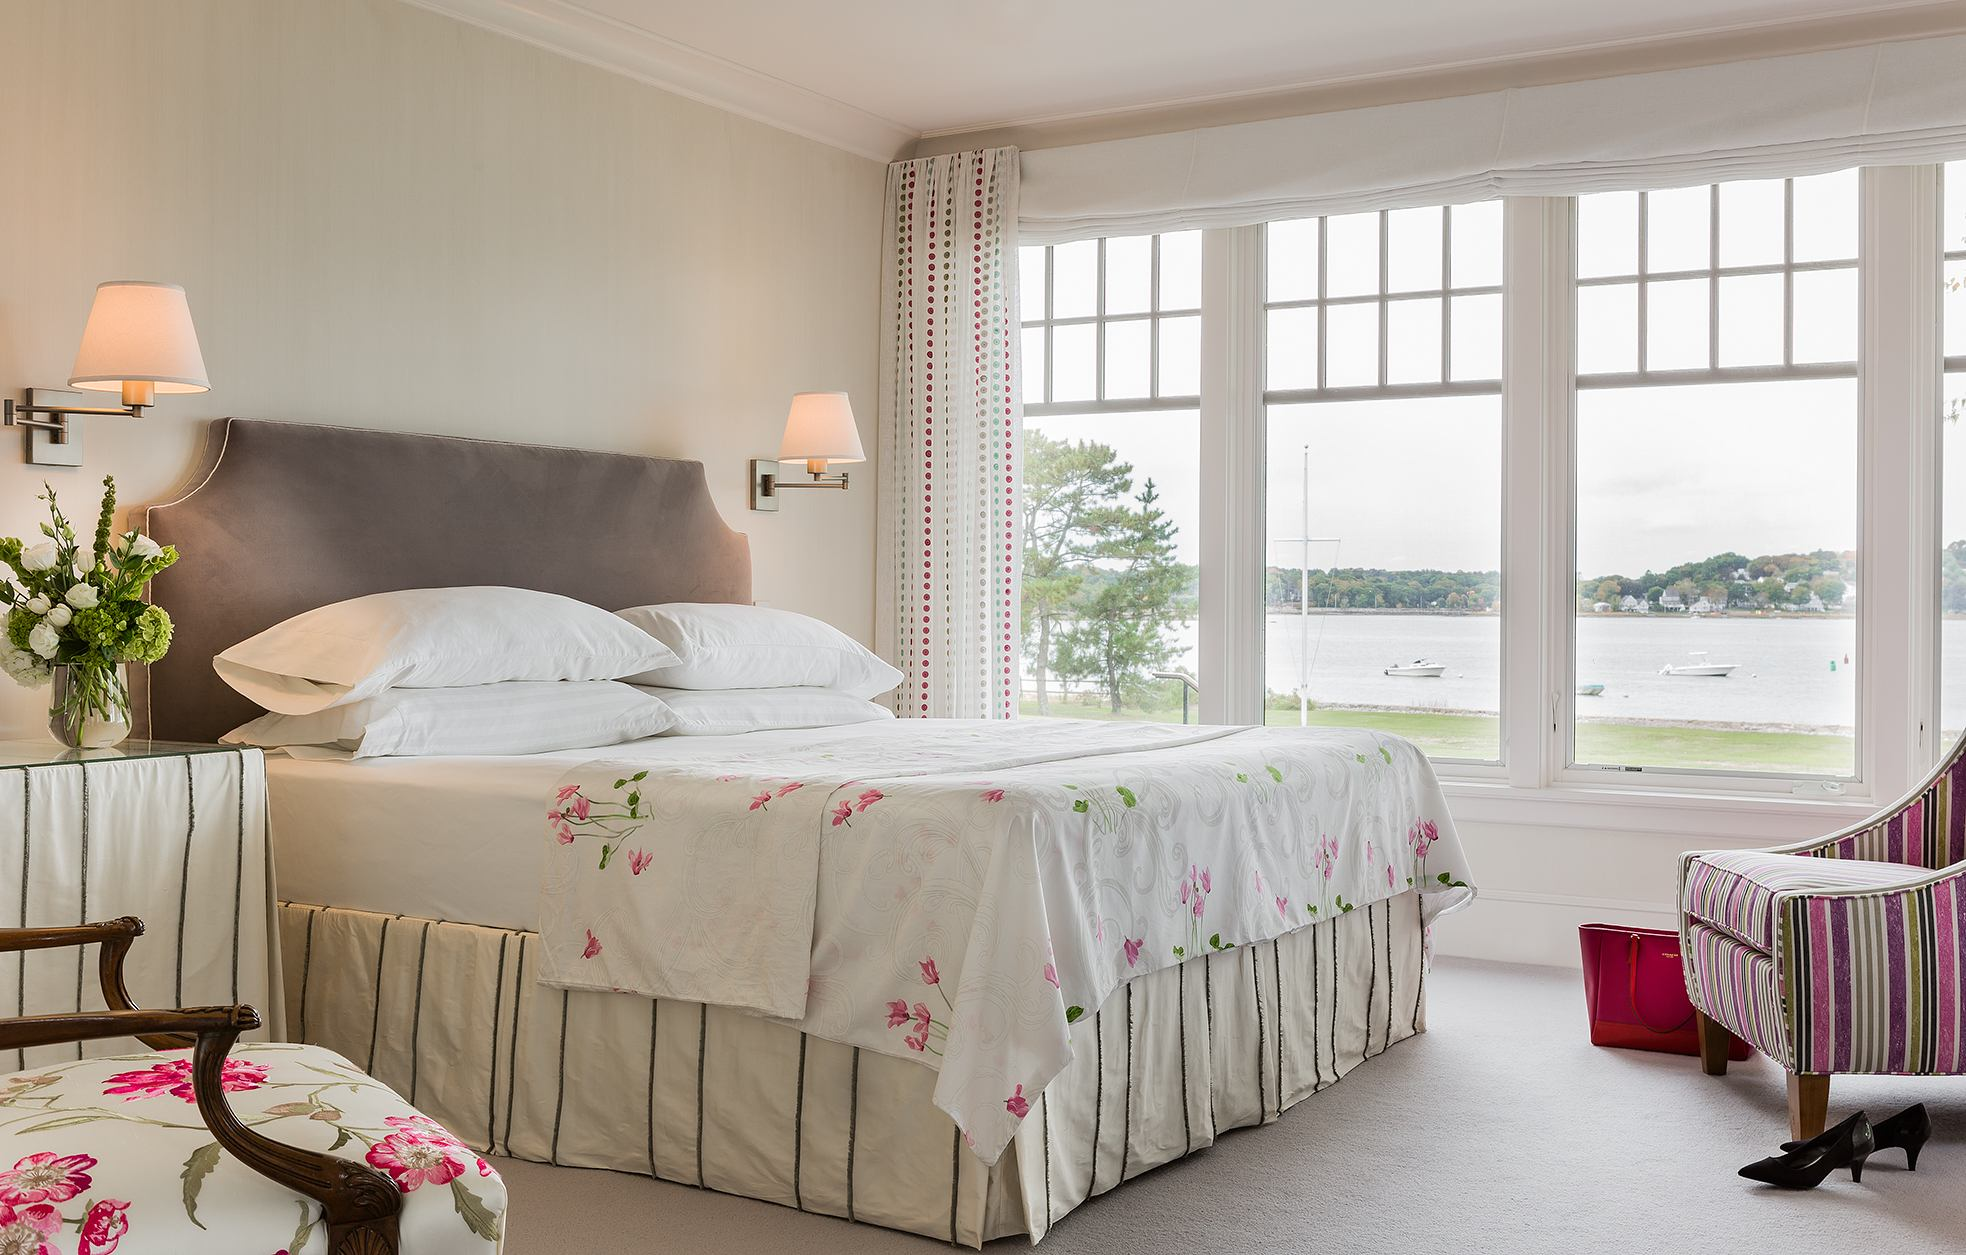 This waterfront bedroom by Elizabeth Swartz Interiors of Boston flirts with romance by using hints of pink flowers in both the bed linens and the chairs. The clean lines and and light colors are romantic in a clean, simple, understated way. Photo: Michael J. Lee